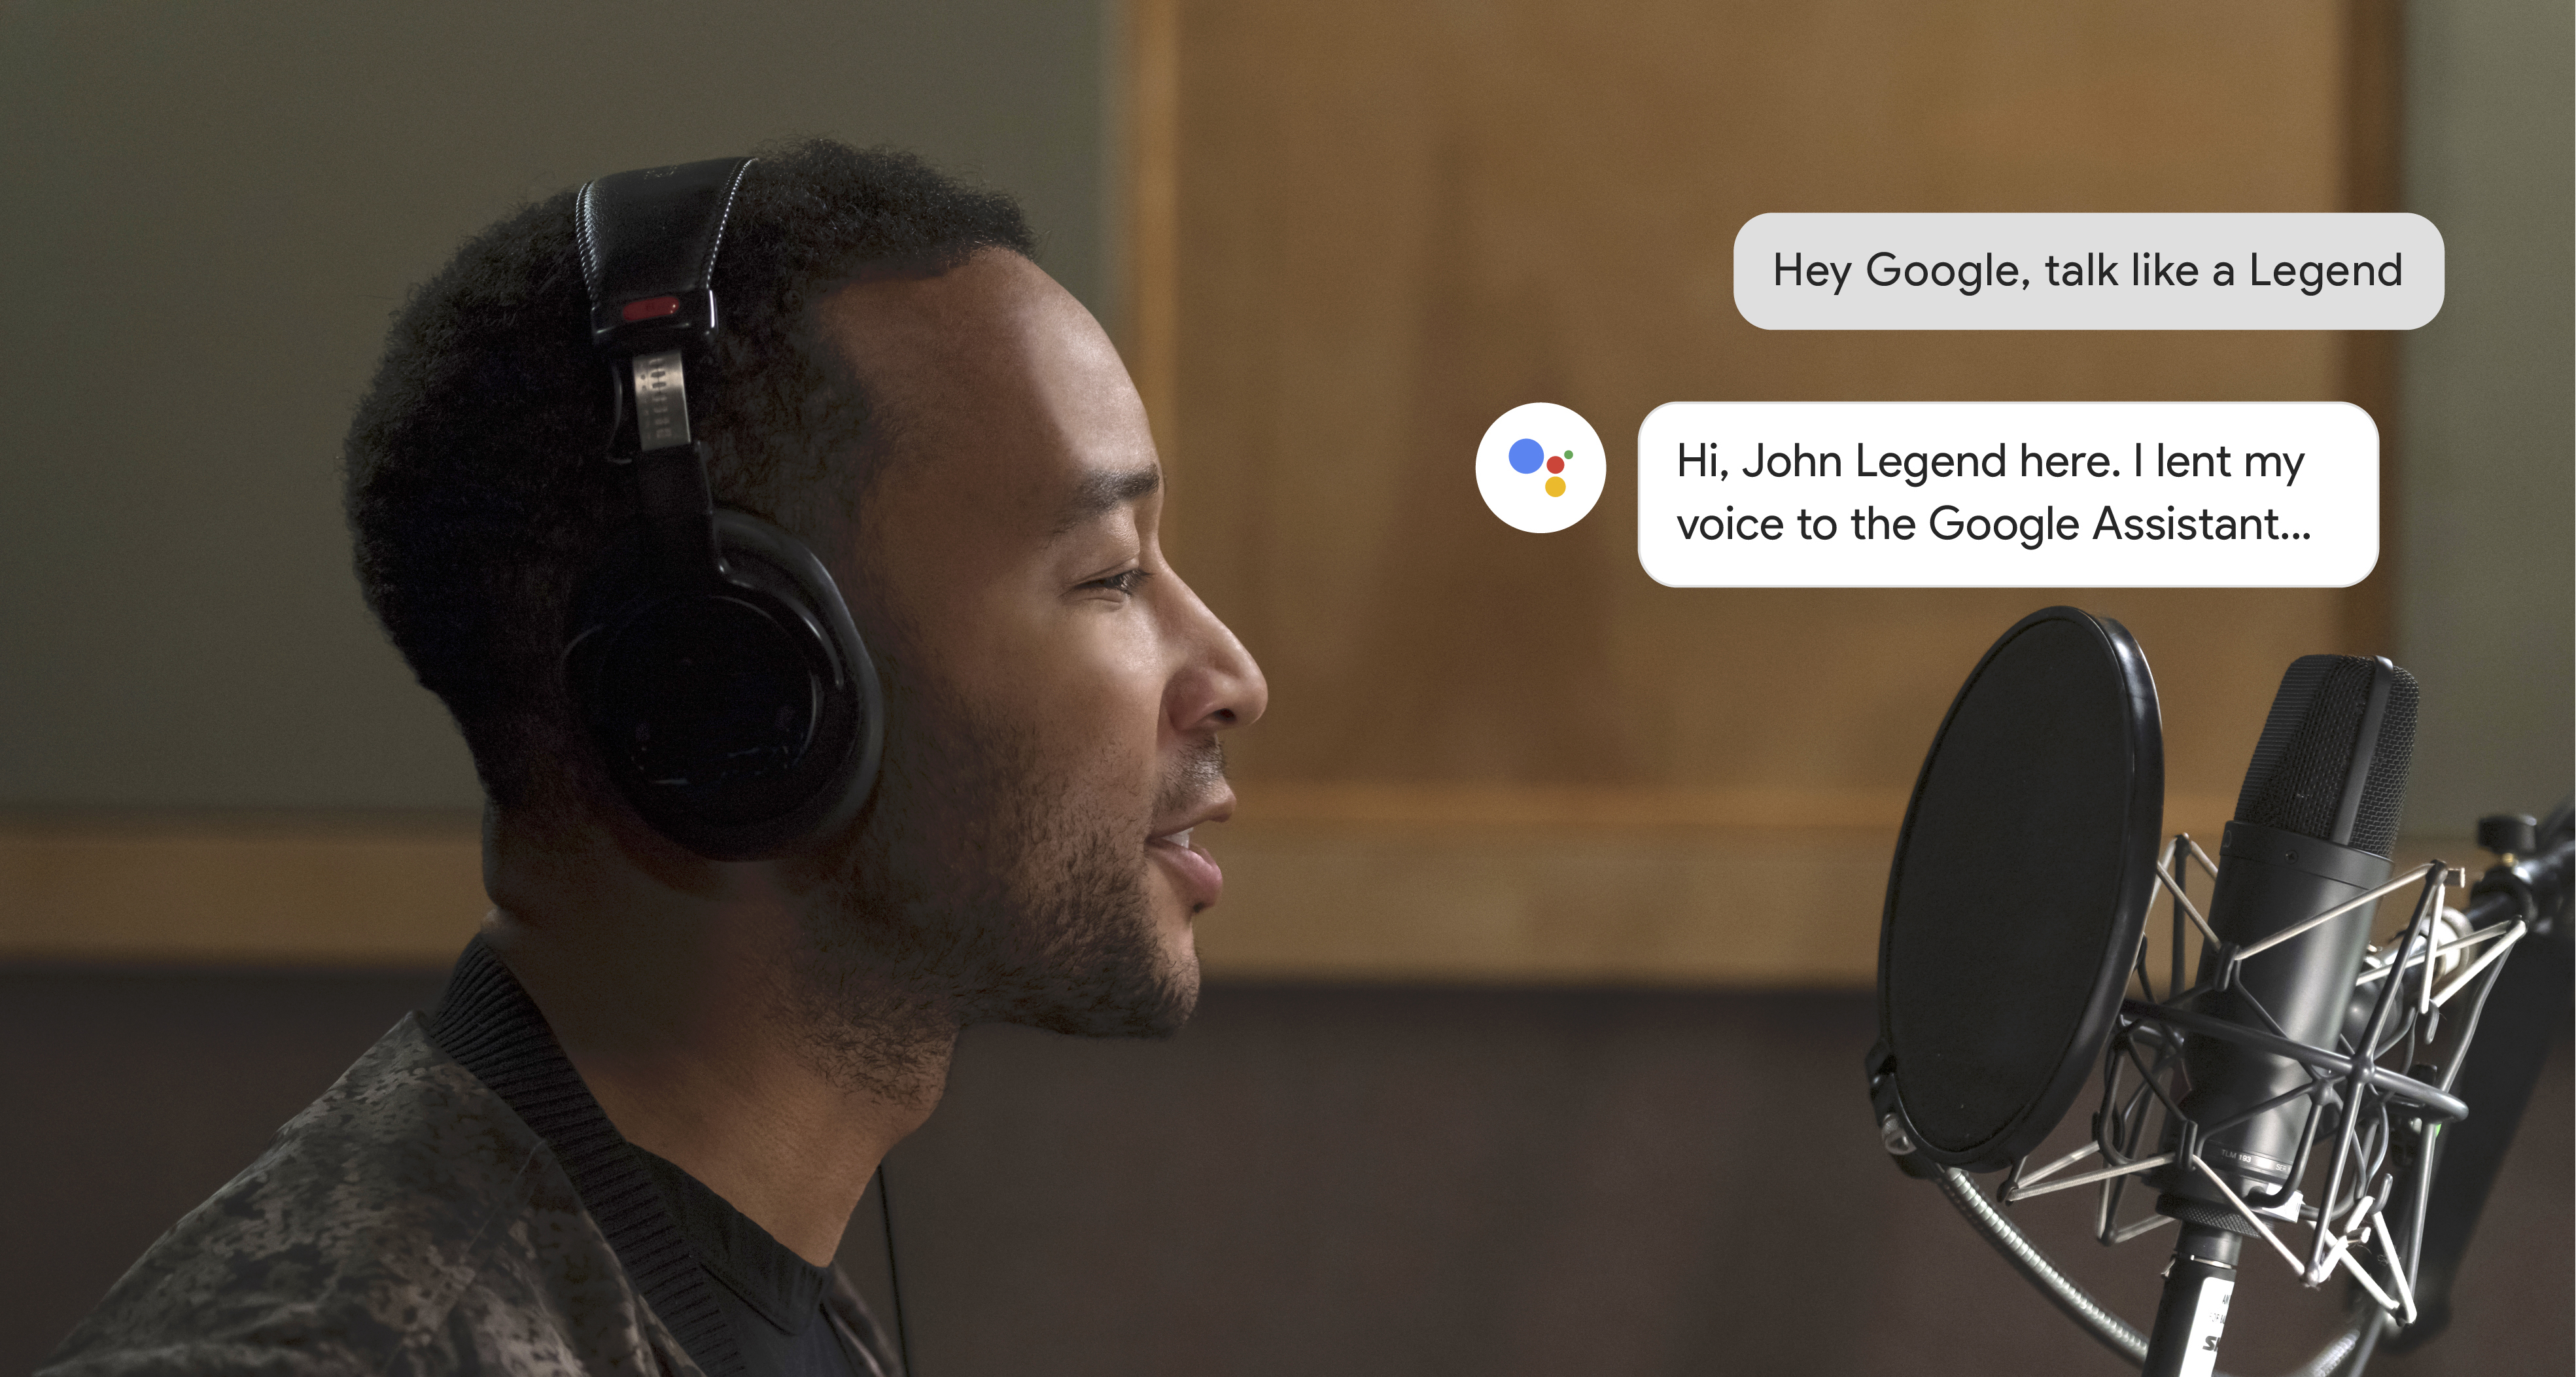 Google Assistant Rolls Out Its First Celebrity Voice Cameo with John Legend